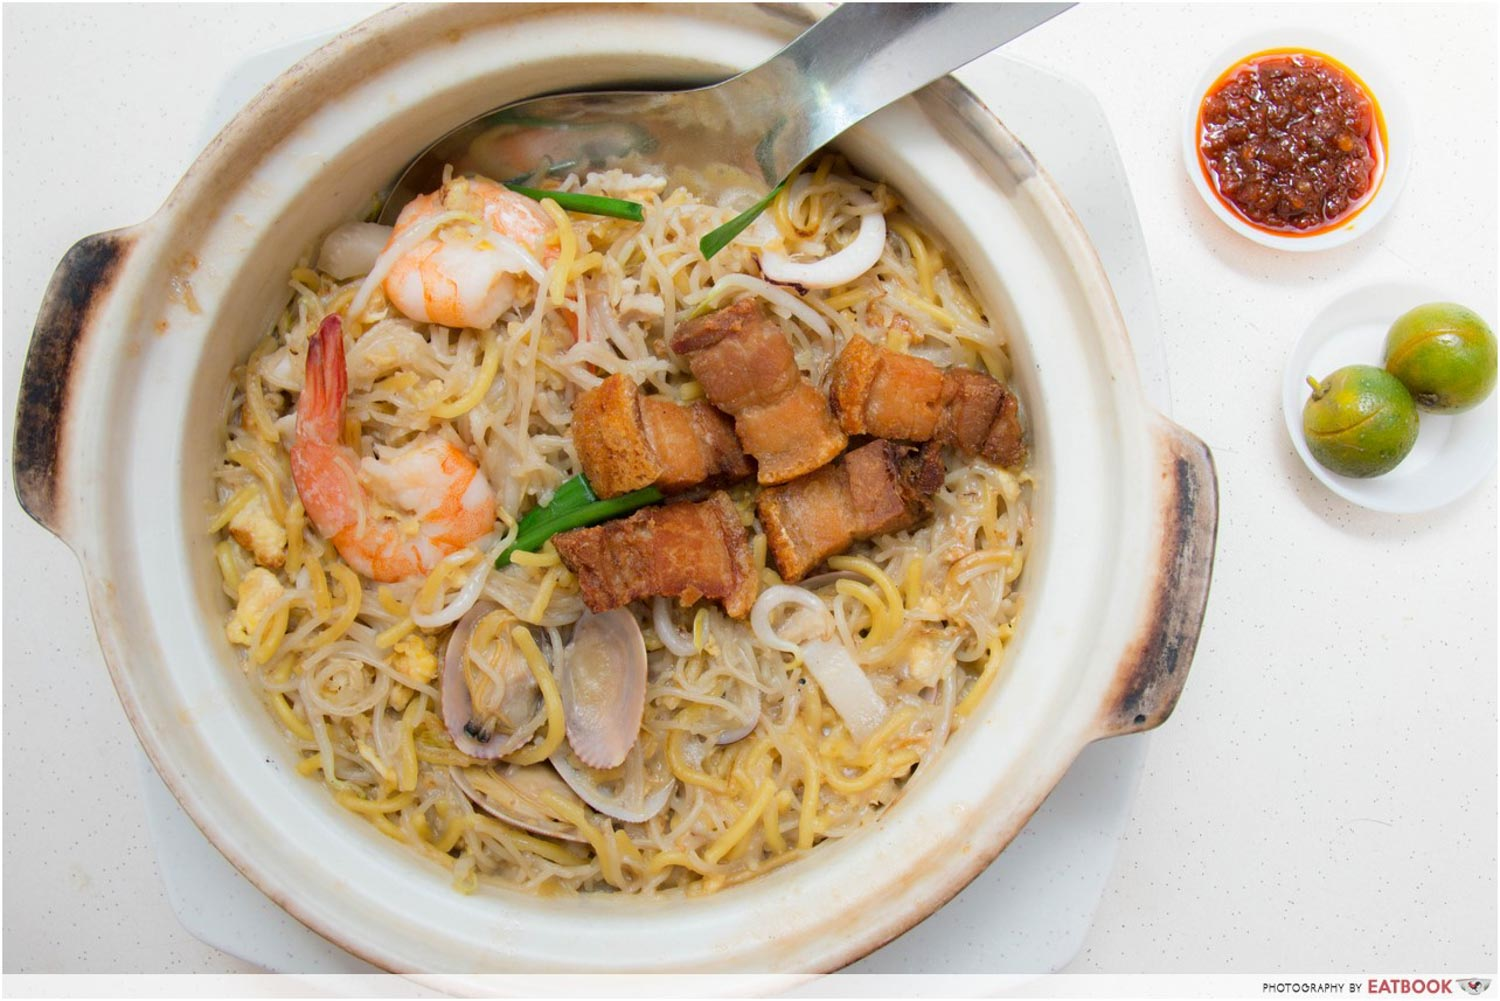 Claypot Dishes - Claypot Hokkien Mee